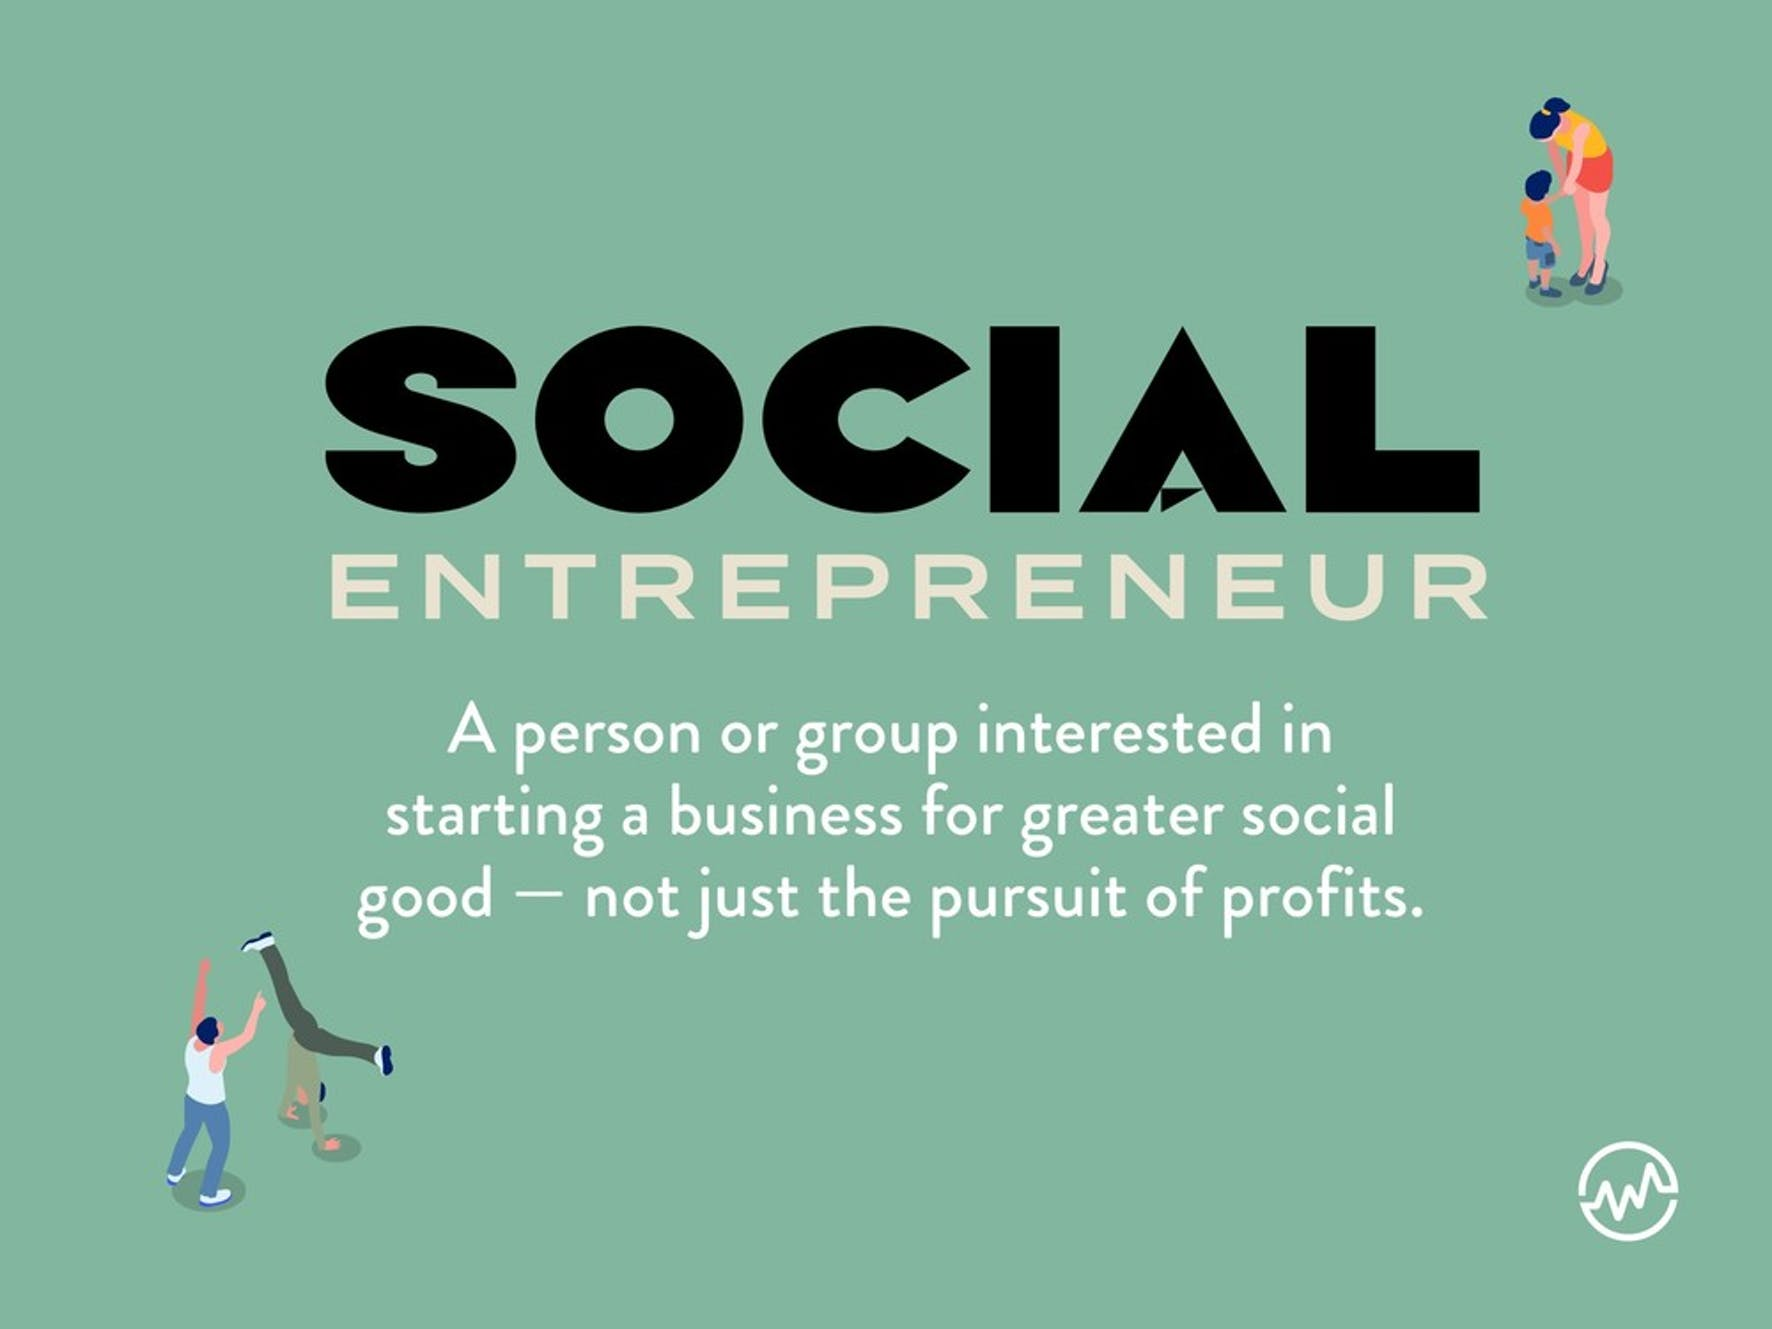 Social Entrepreneur definition